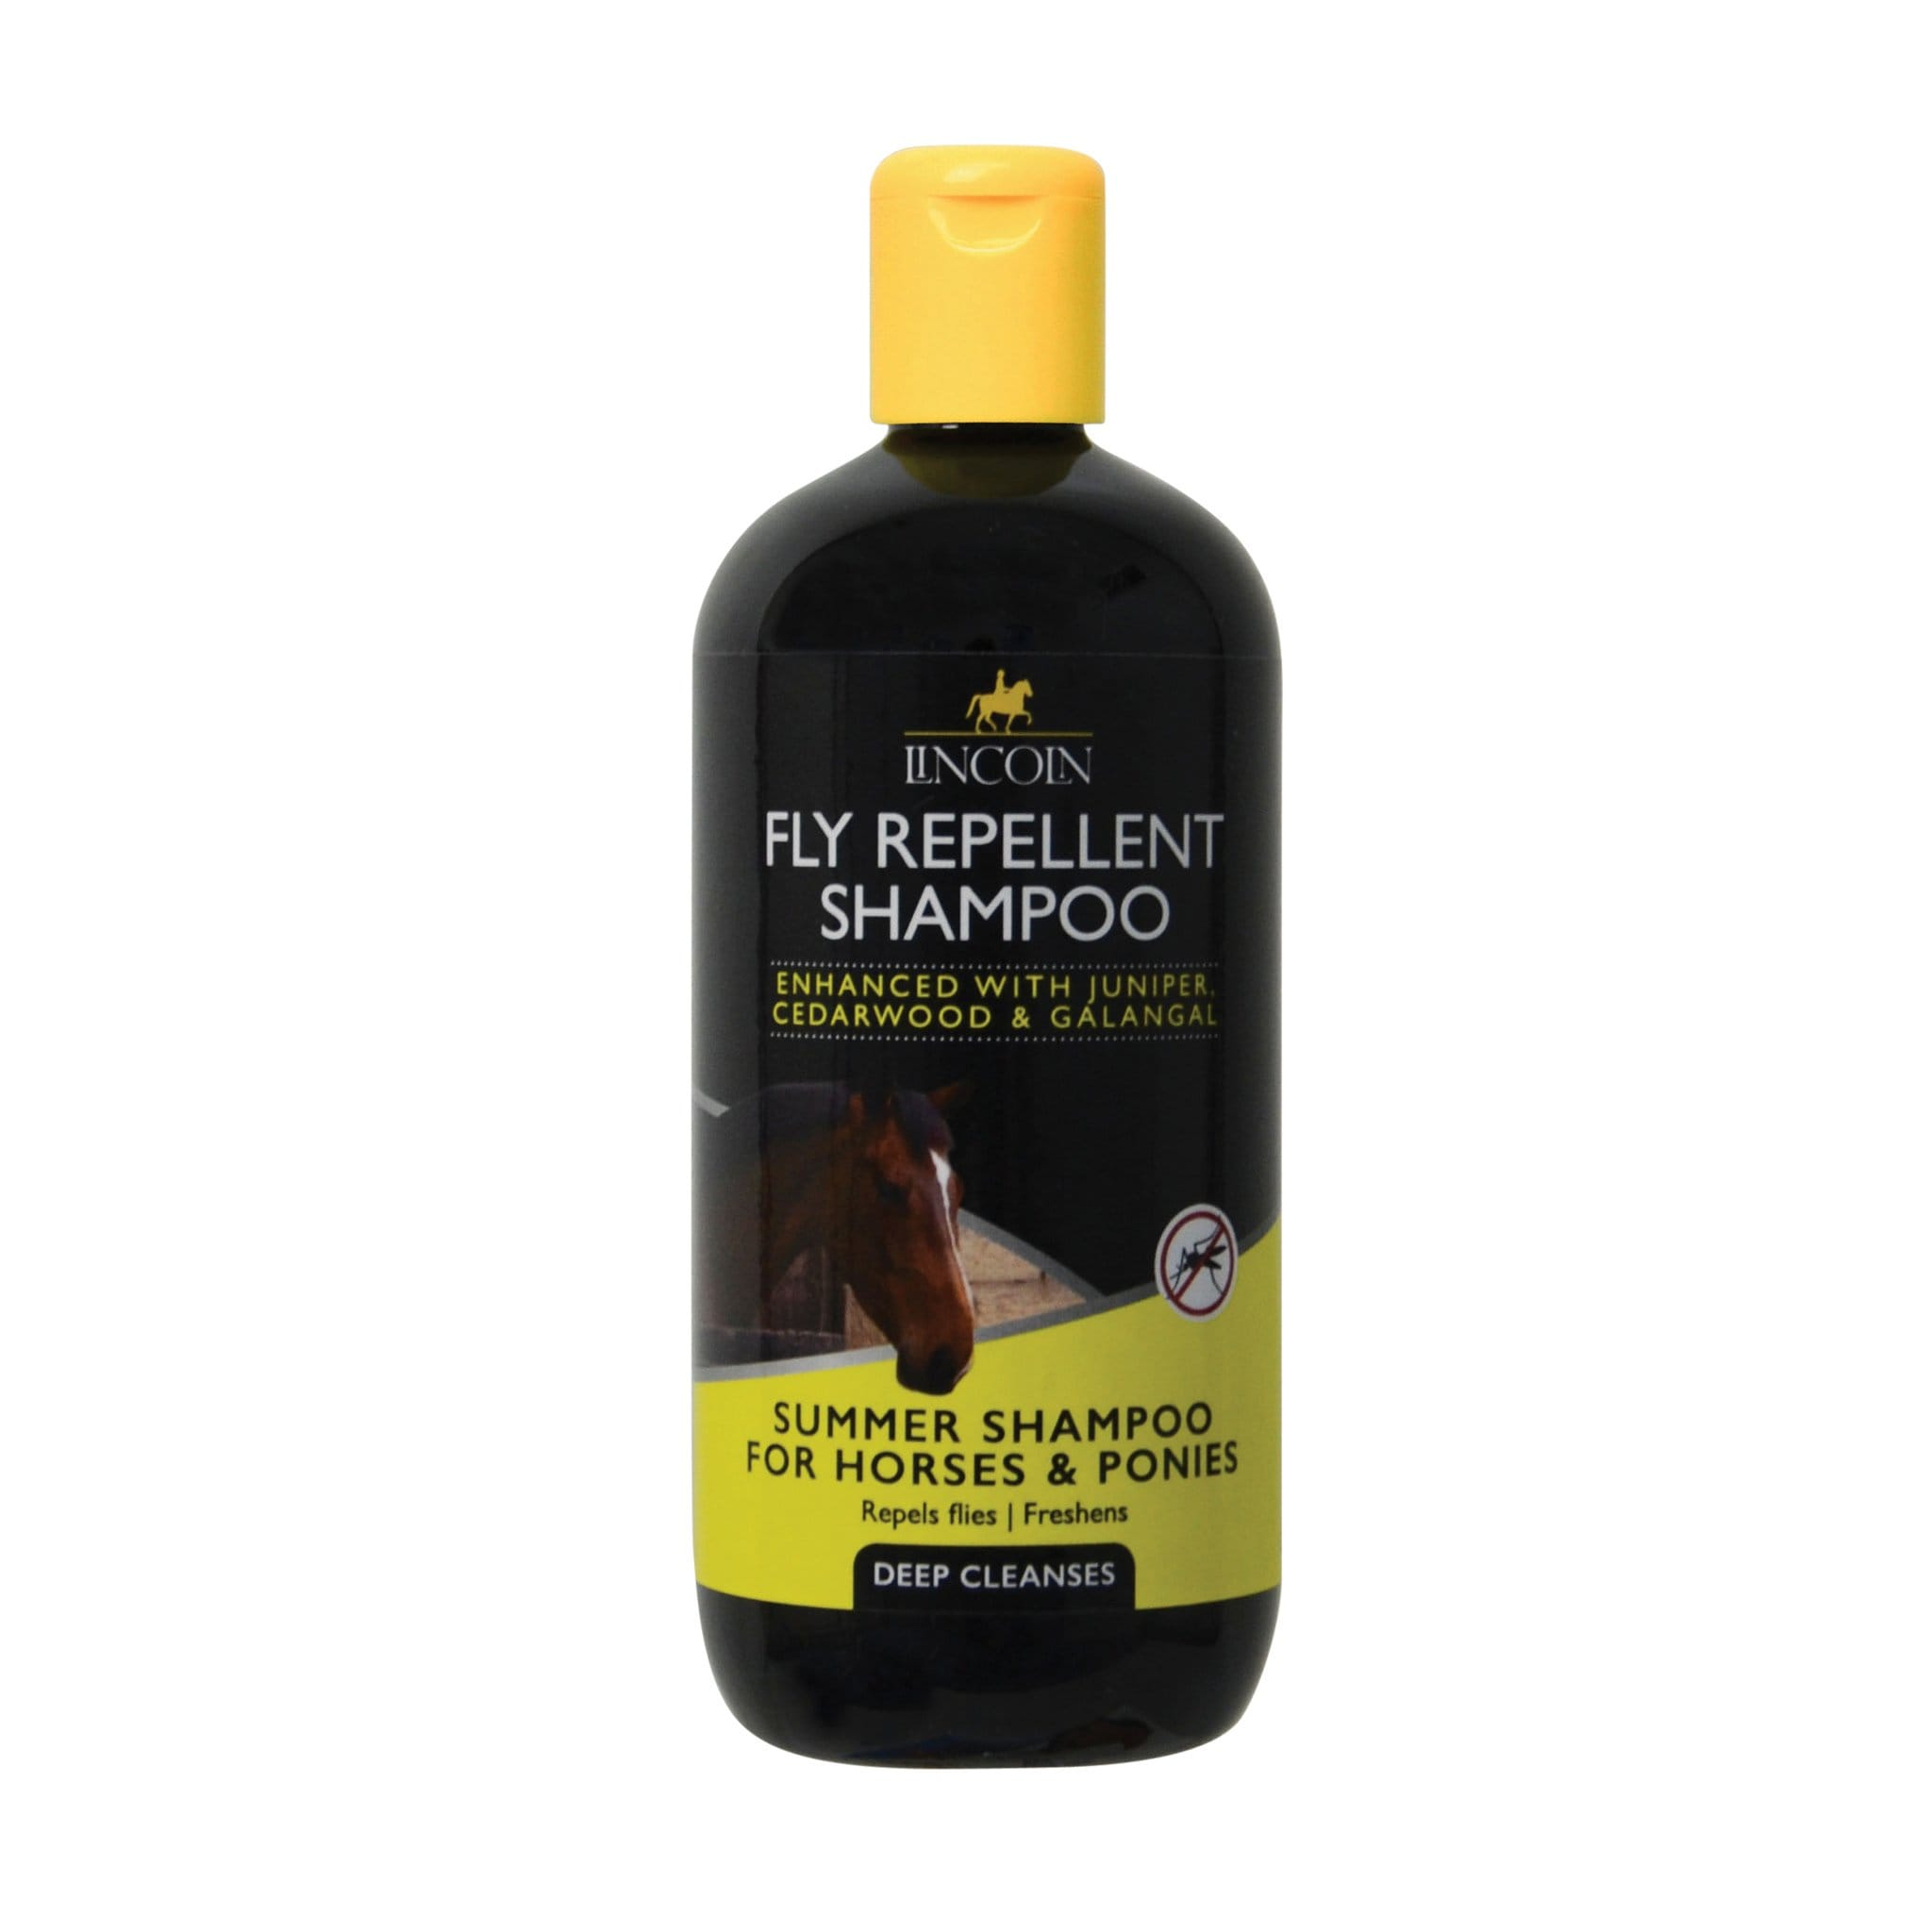 Lincoln Fly Repellent Shampoo 4144